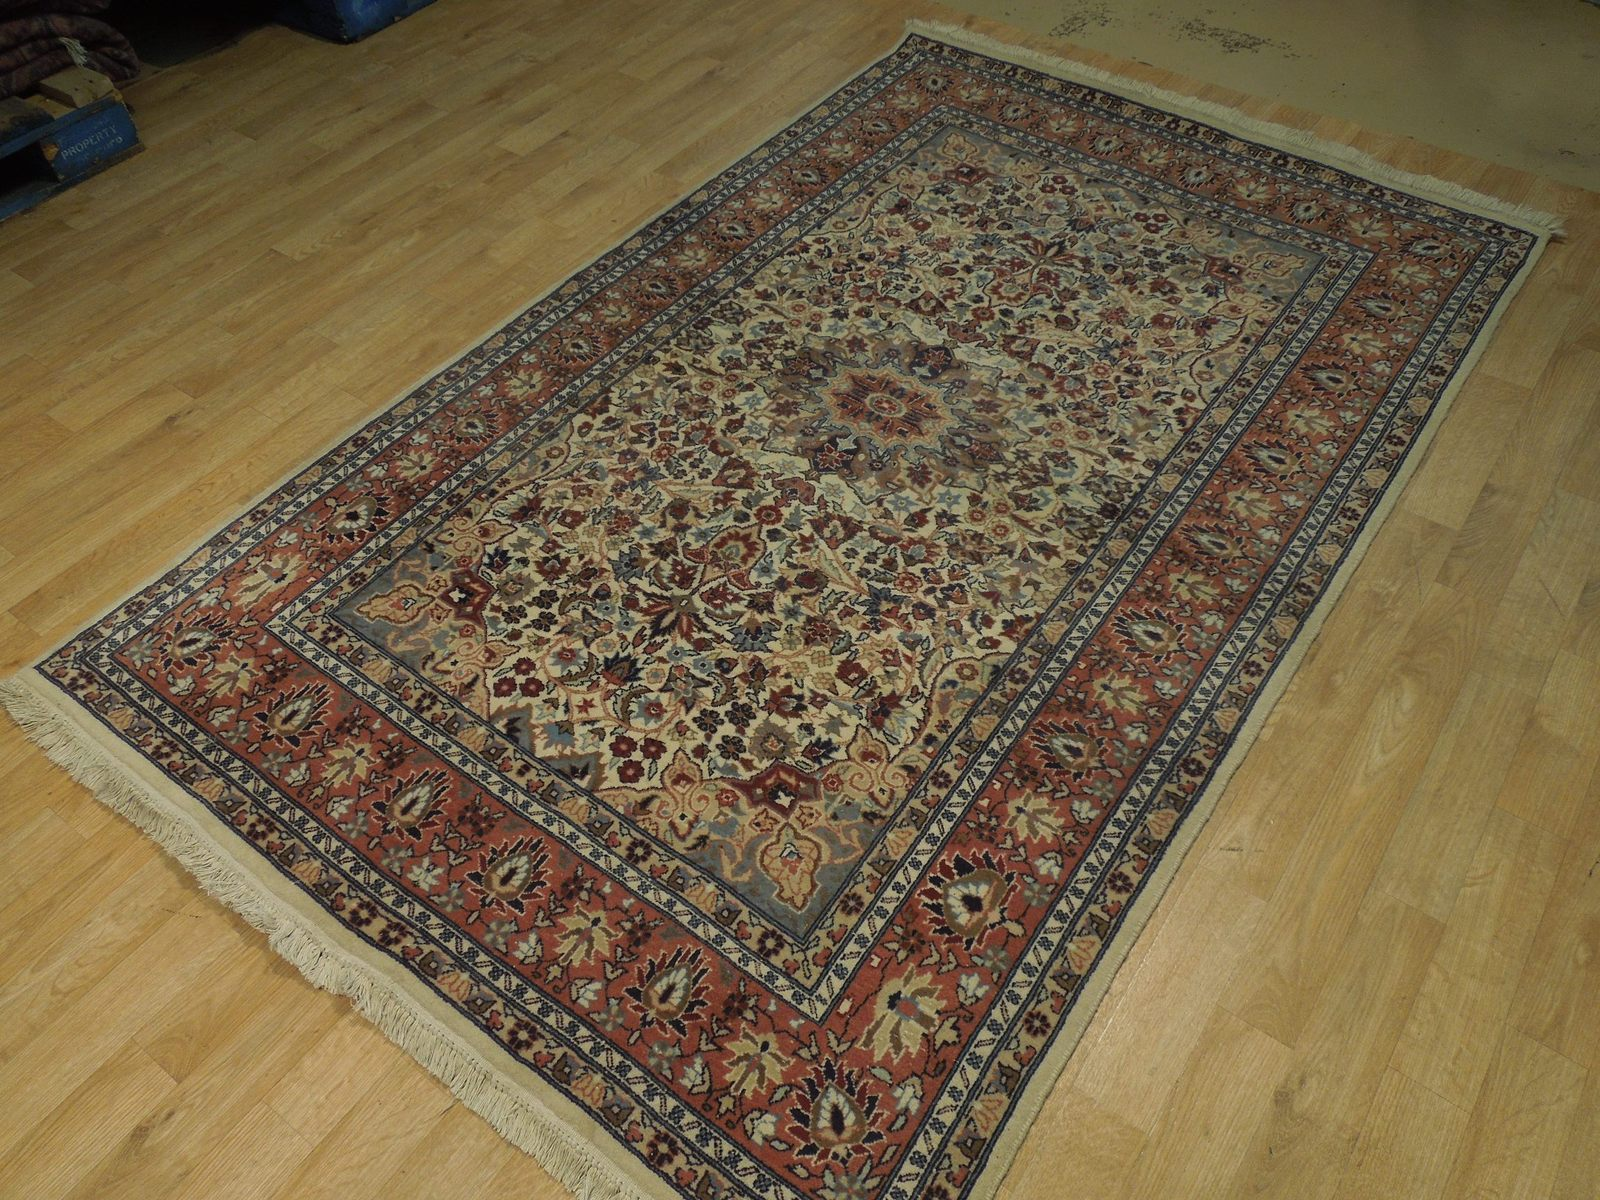 Ivory Wool Carpet 5 x 7 Fine Quality Reproduction Traditional Handmade Rug image 5